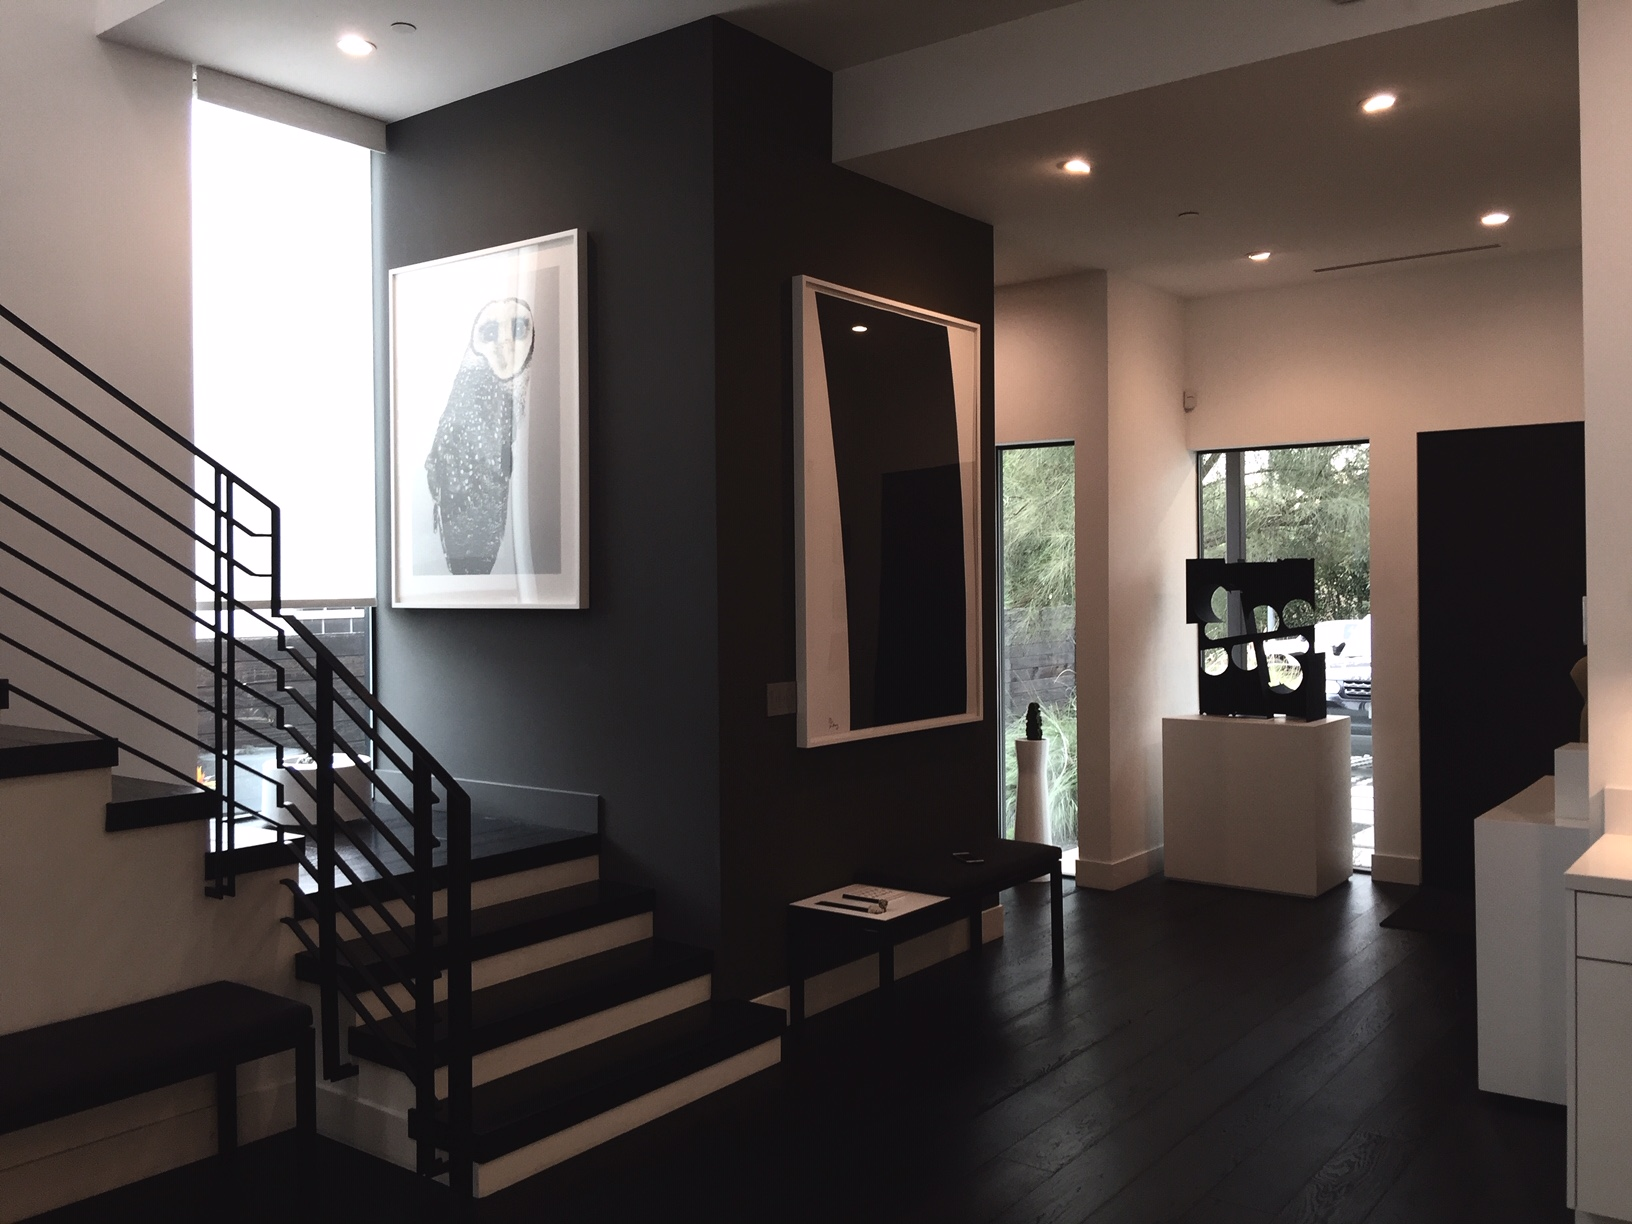 From right to left: a sculpture by Matt Paweski, then works by Richard Serra, and by Laila Jeffrey. Courtesy of Melissa de la Cruz and Michael Johnston.